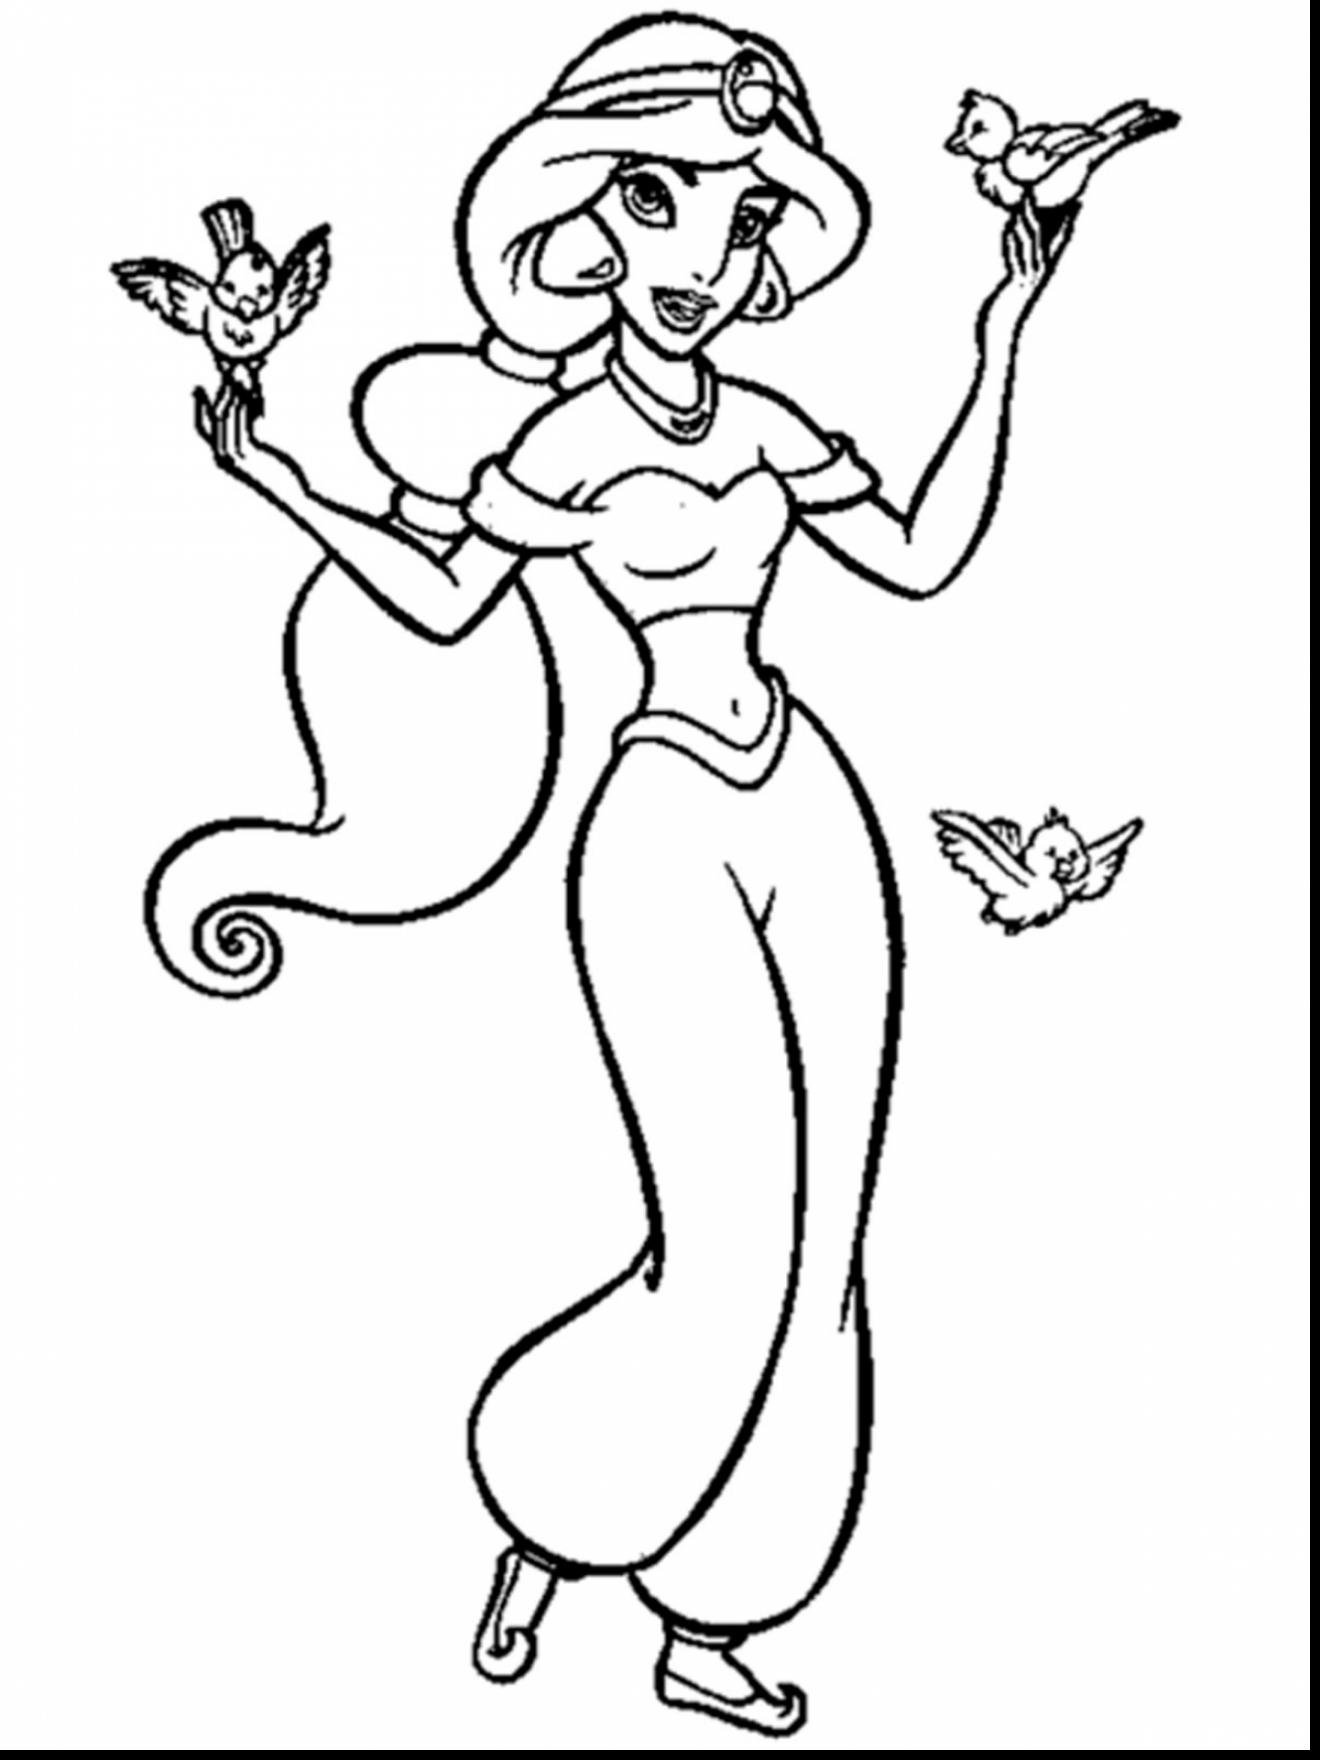 Disney Princess Jasmine Coloring Pages At Getdrawings Com Free For